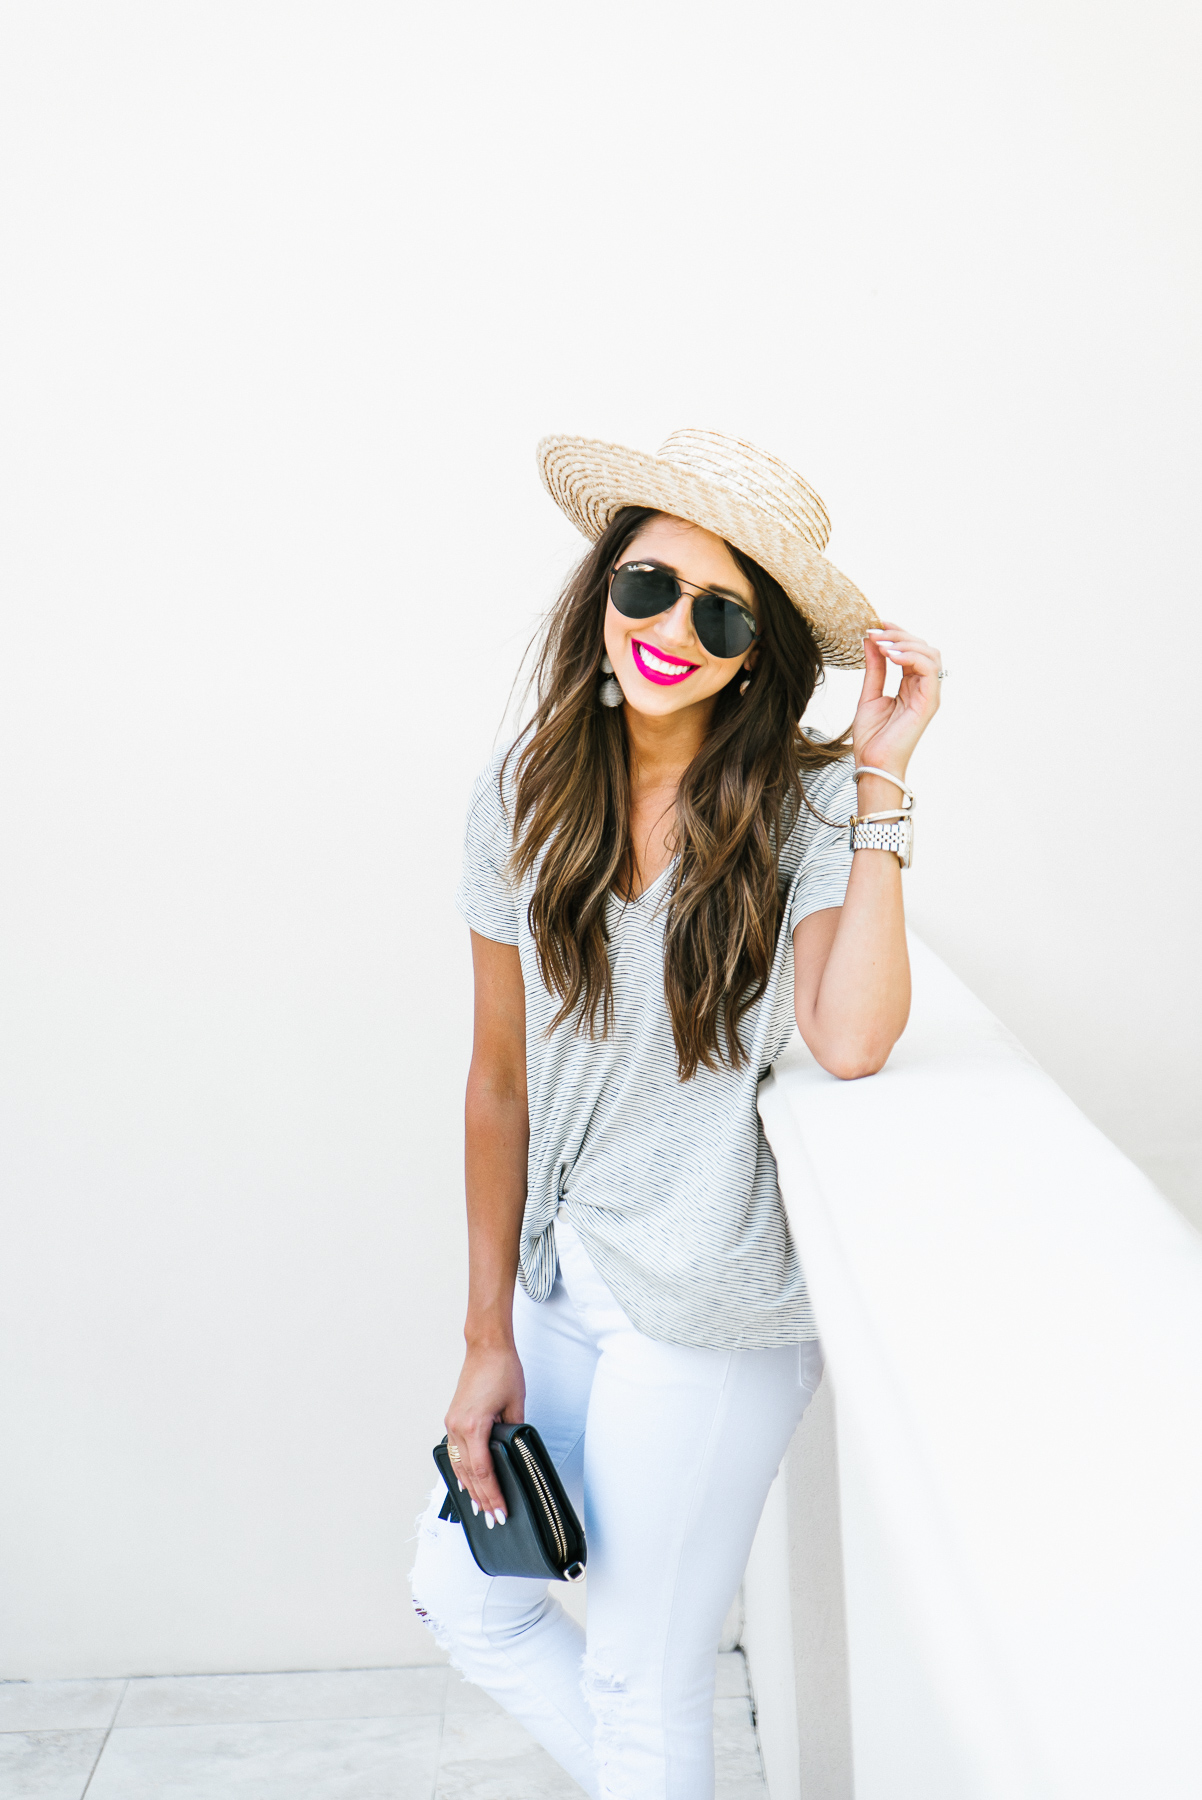 Dress Up Buttercup, Dede Raad, Houston Blogger, Fashion Blogger, Stripe tee, basic tee, white jeans, how to accessorize a basic tee